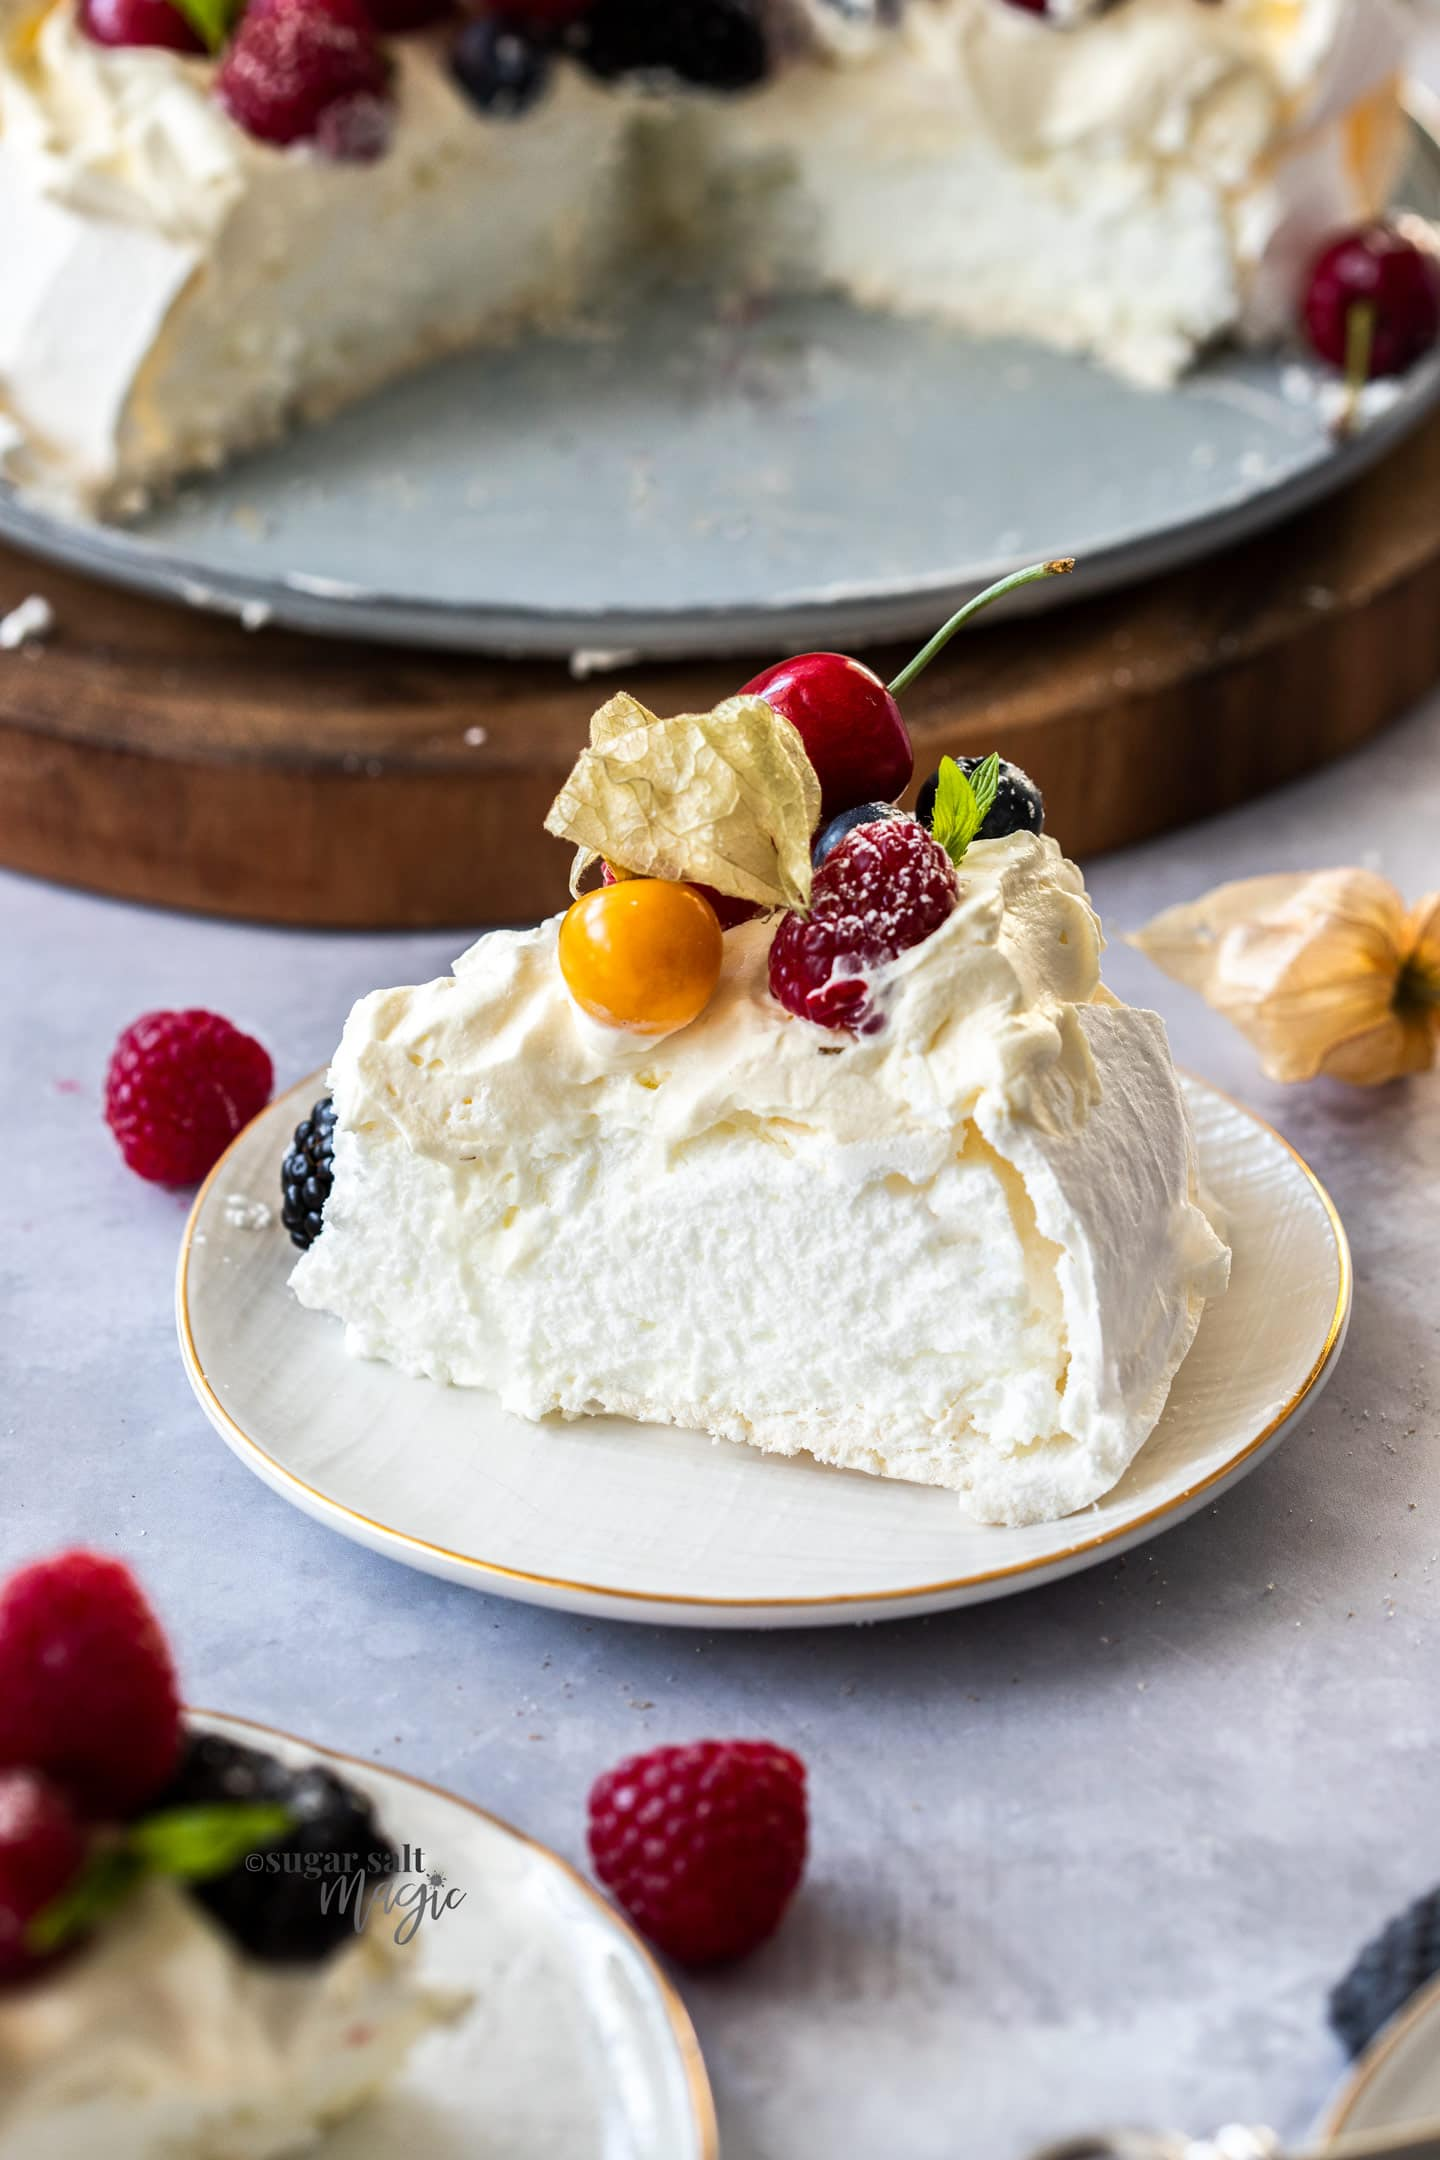 A slice of pavlova on a small whtie plate with berries on top